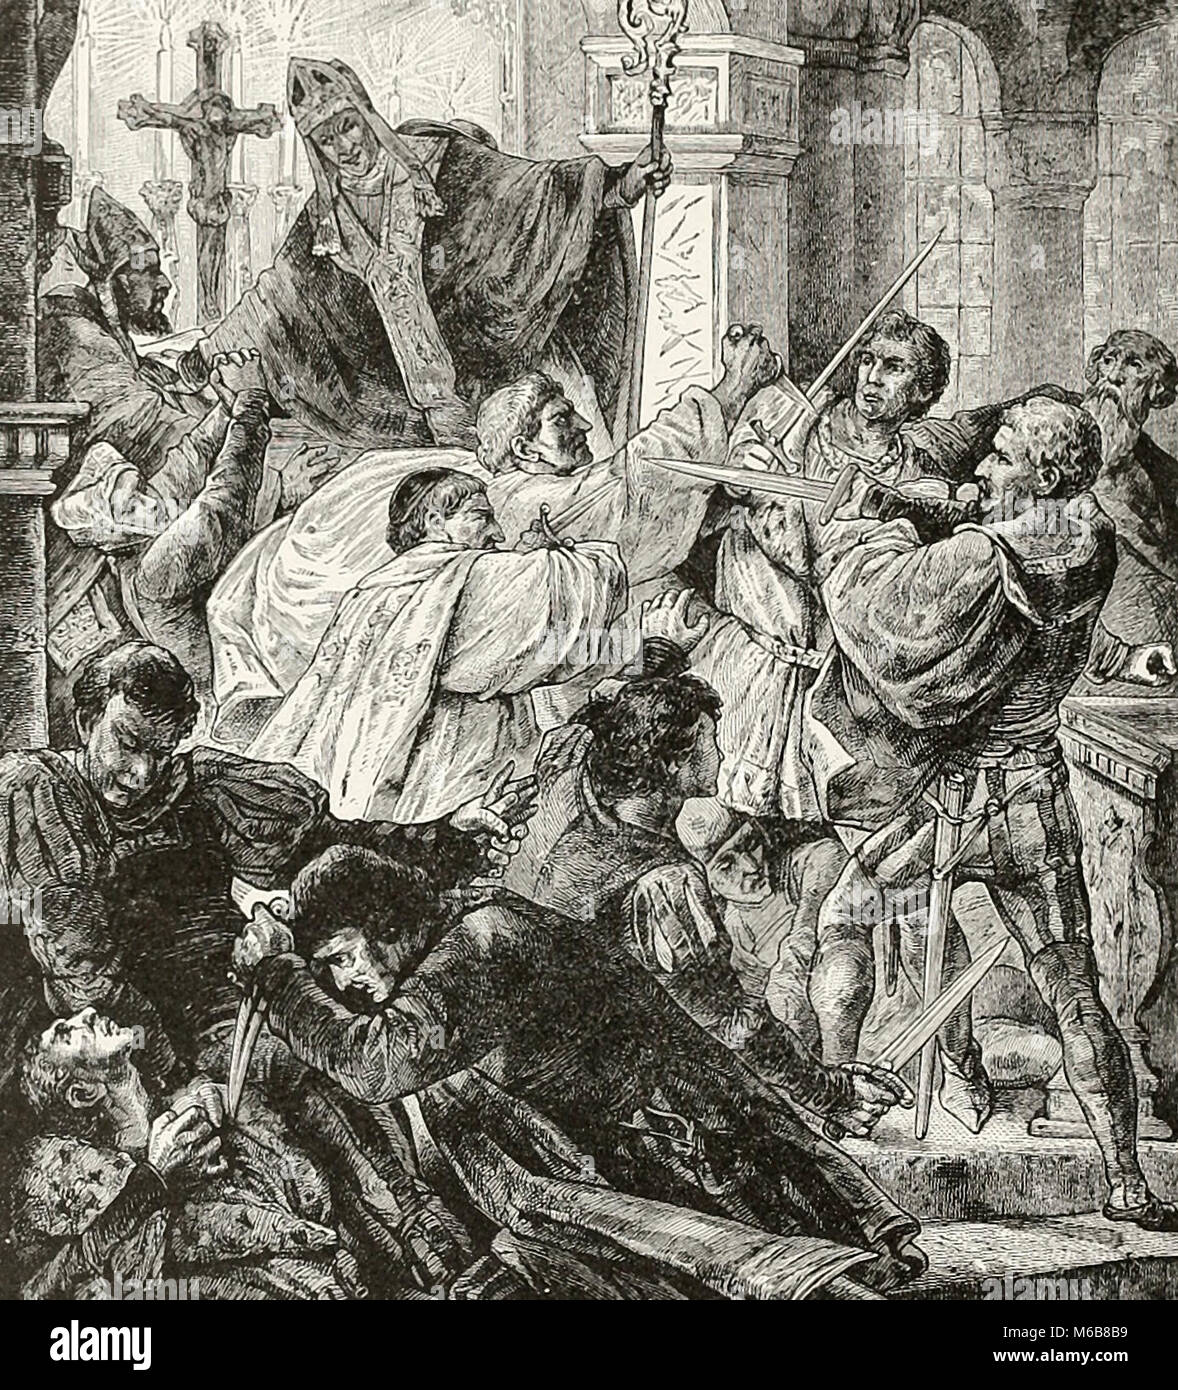 Attempted assassination of the Medici, April 26, 1478 - Stock Image